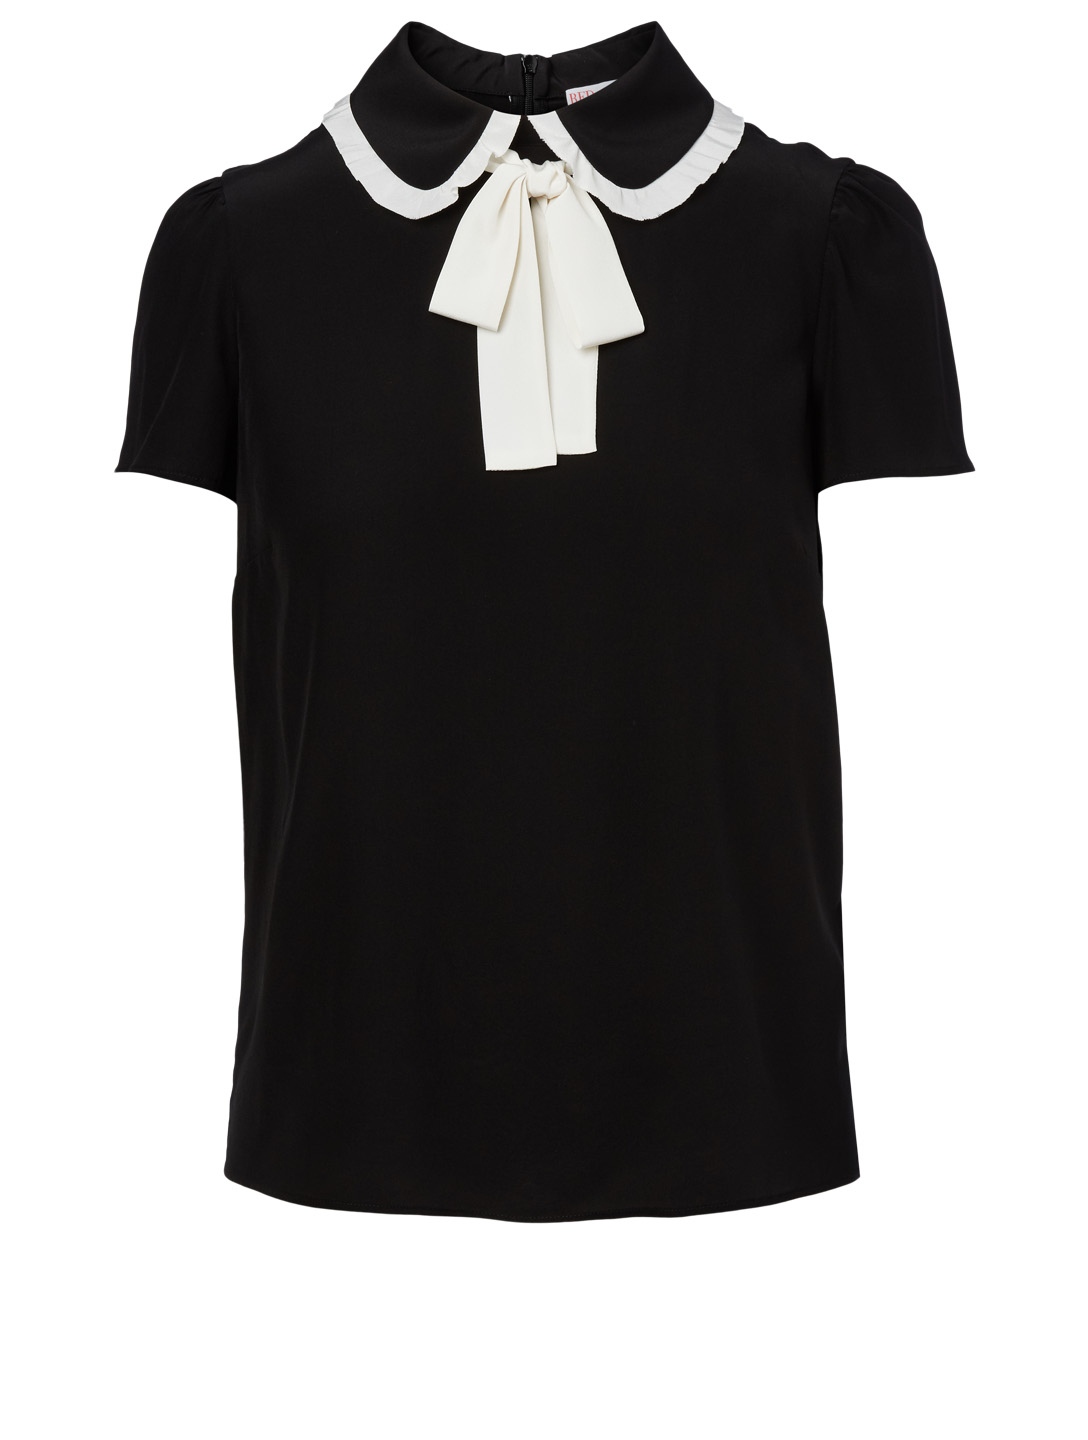 RED VALENTINO Silk Top With Bow Women's Black